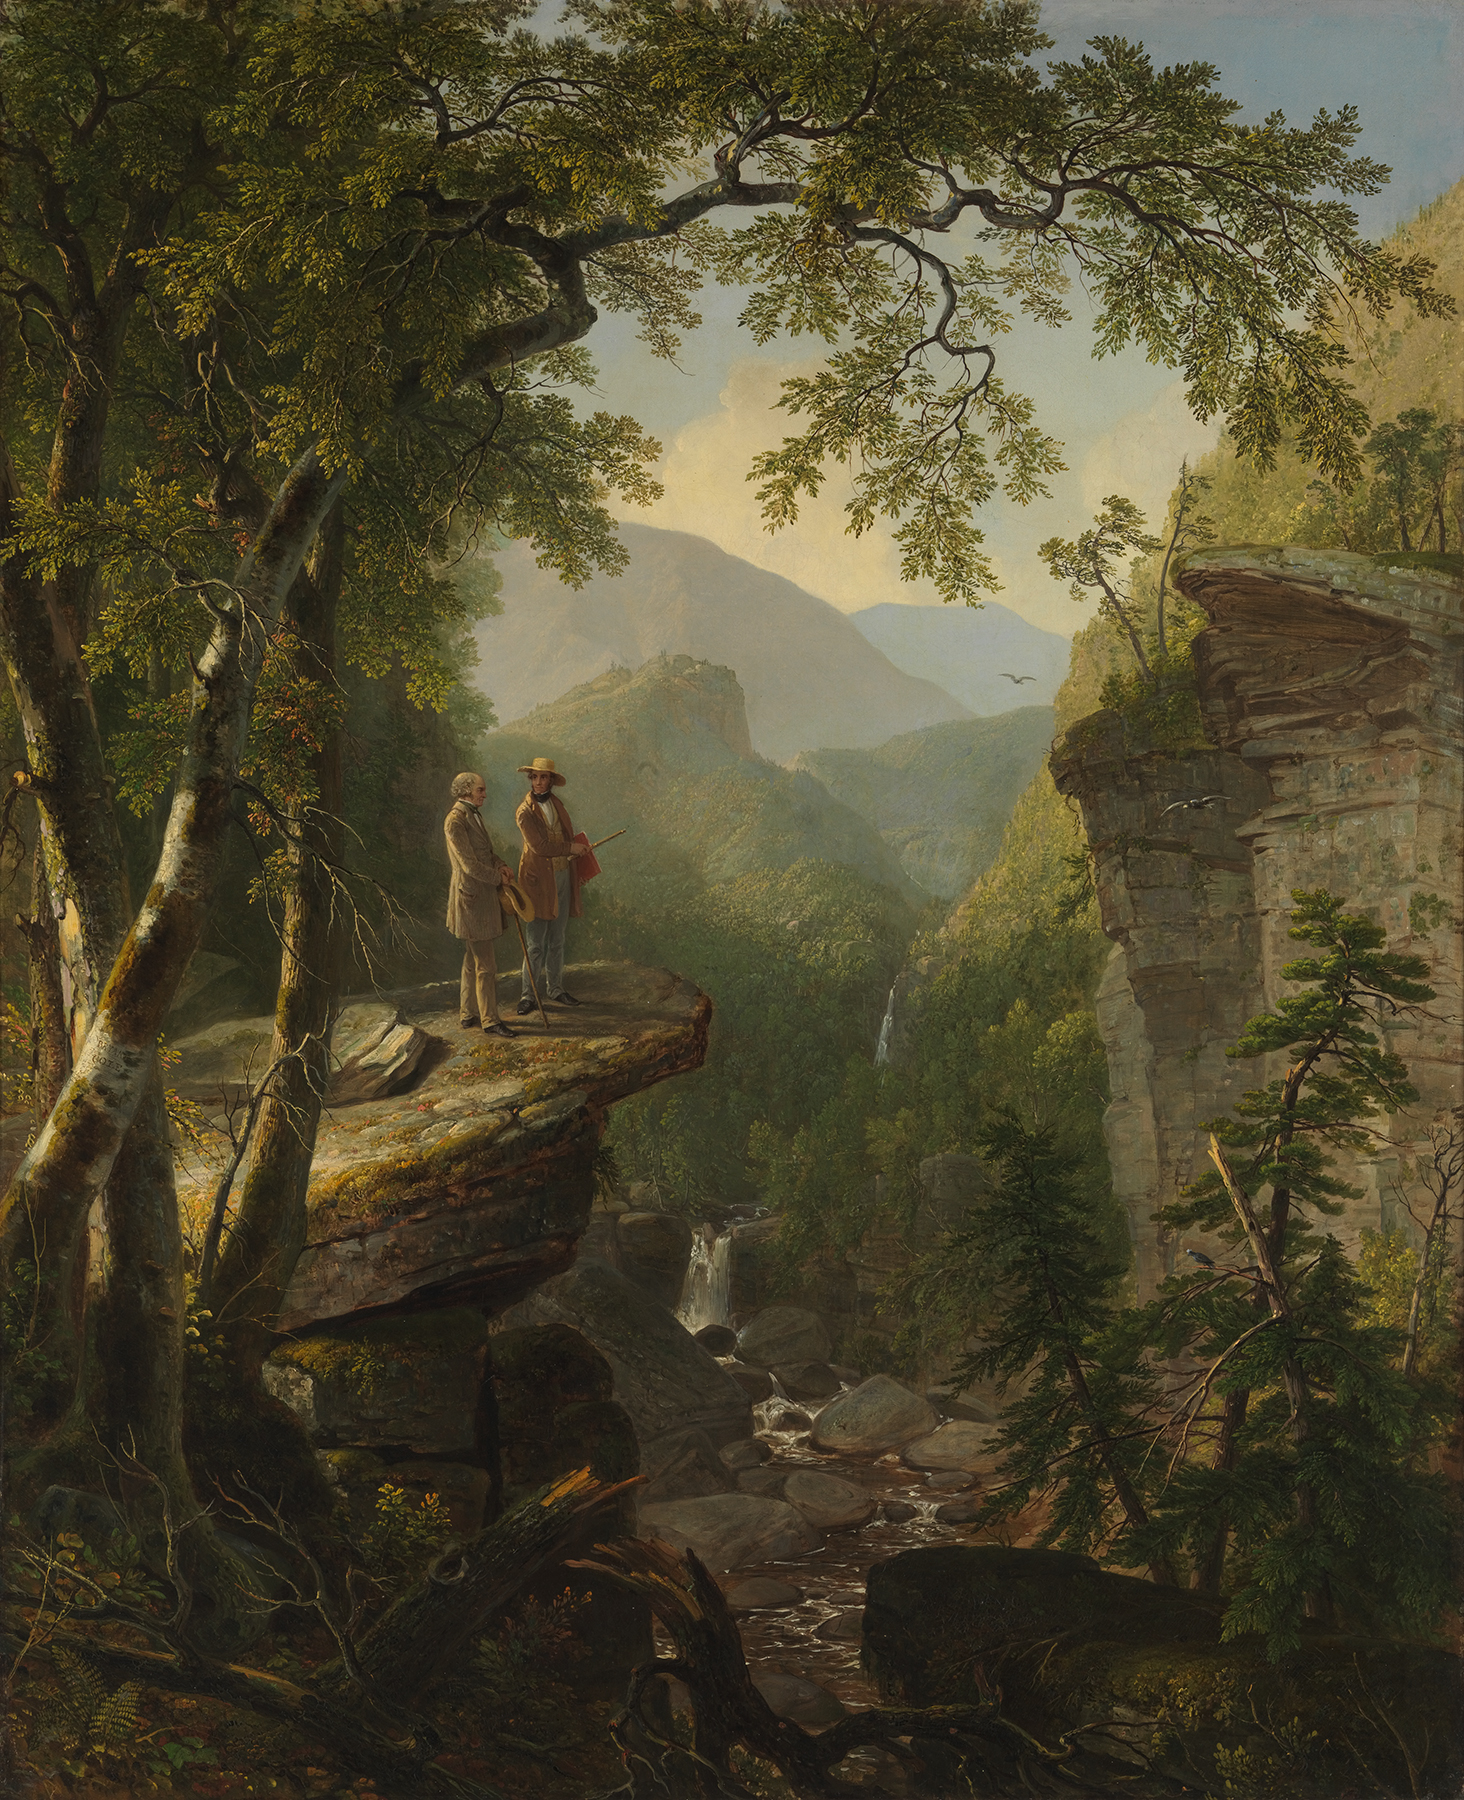 Asher Brown Durand [Public domain], via Wikimedia Commons